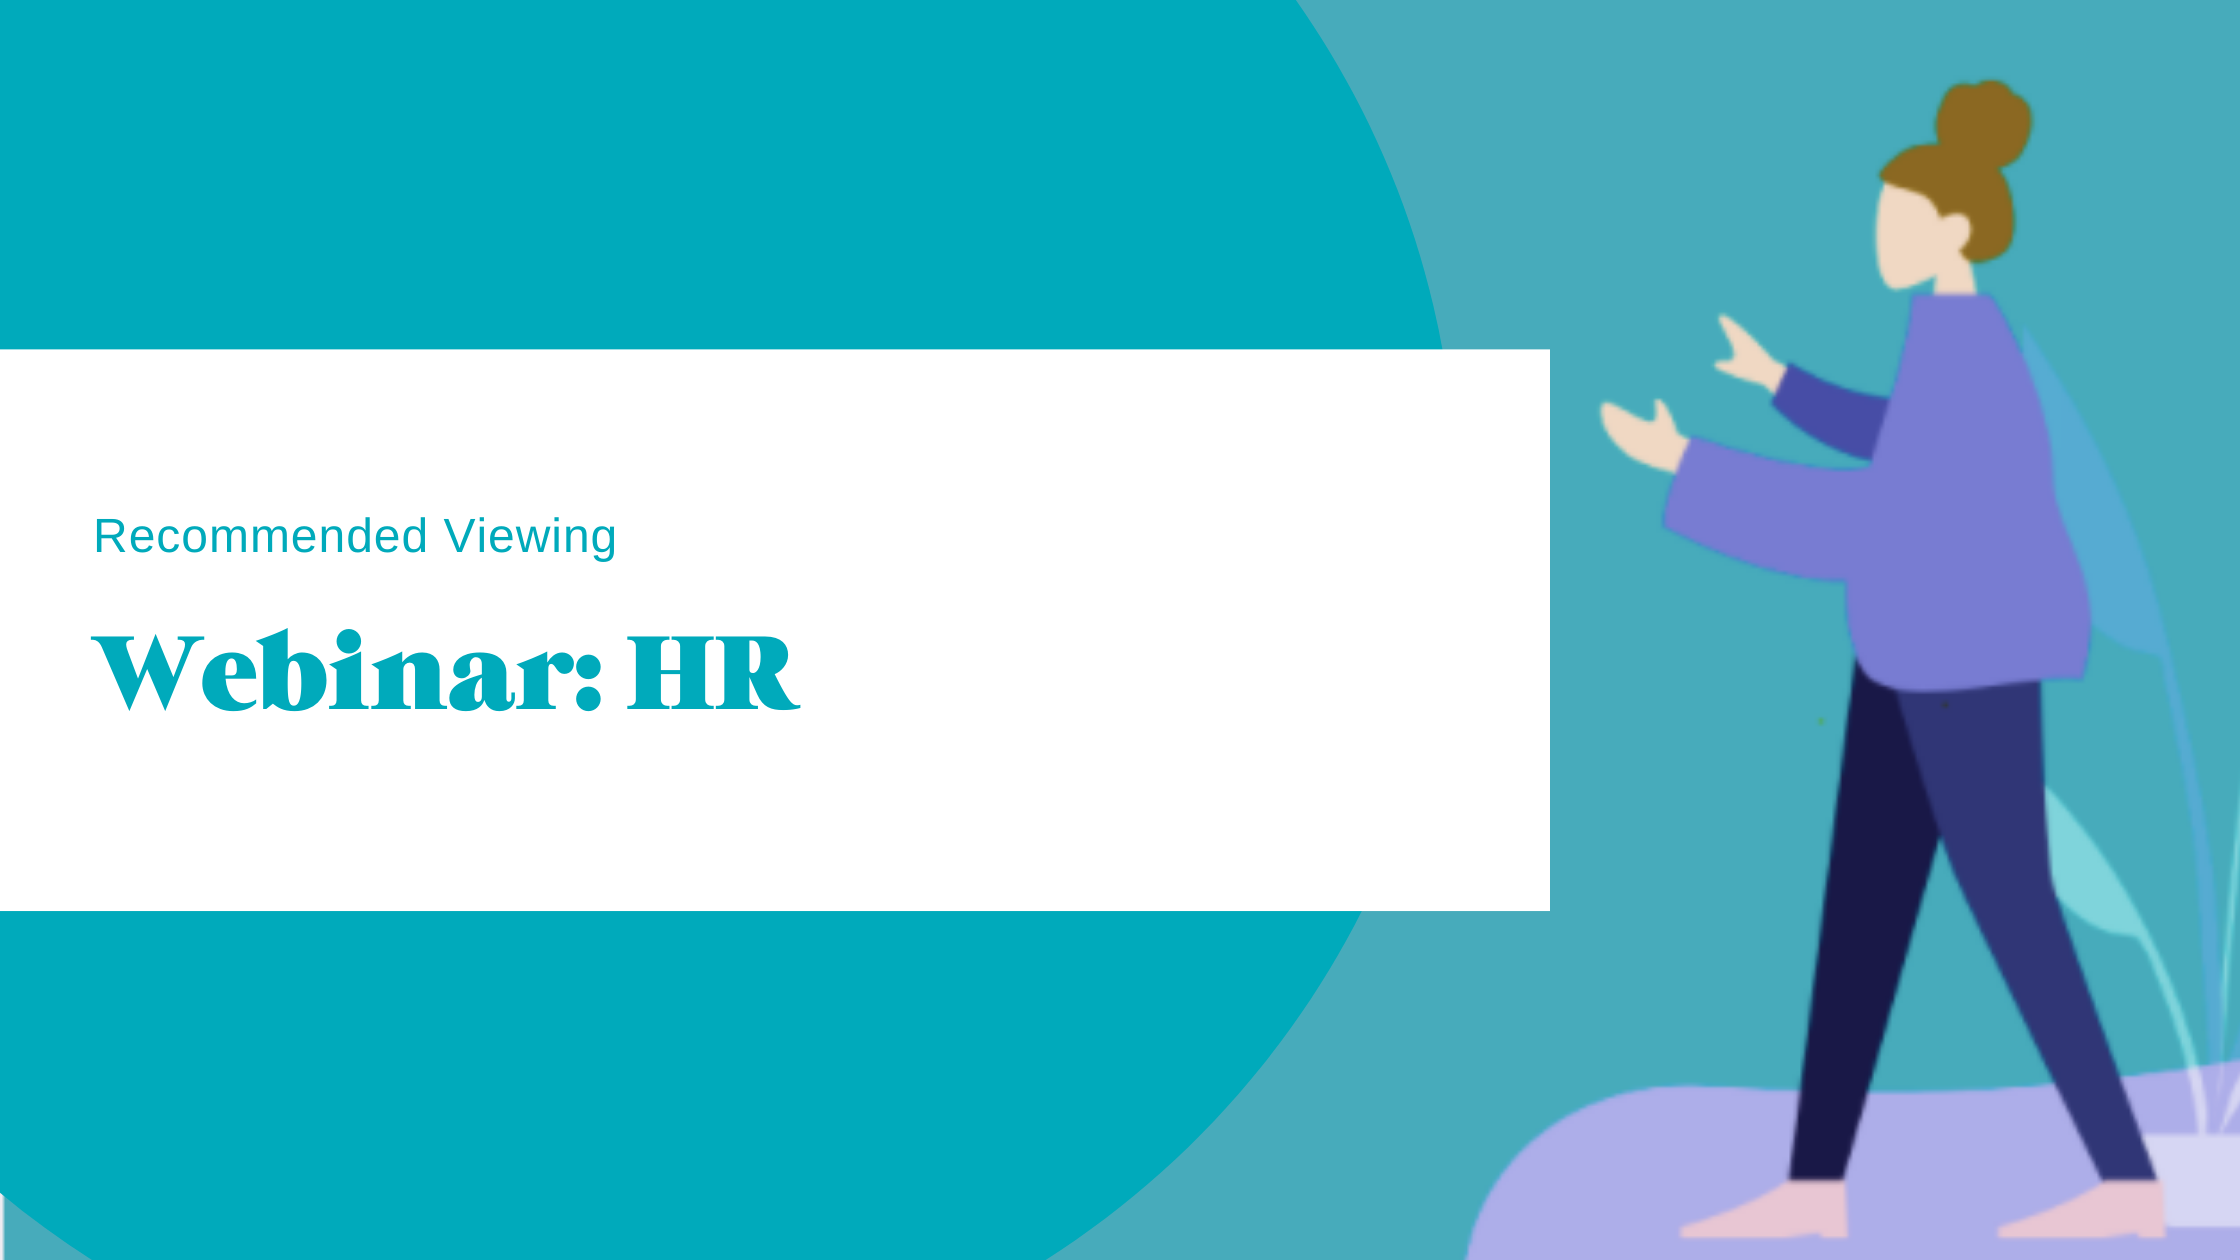 Recommended viewing webinar HR